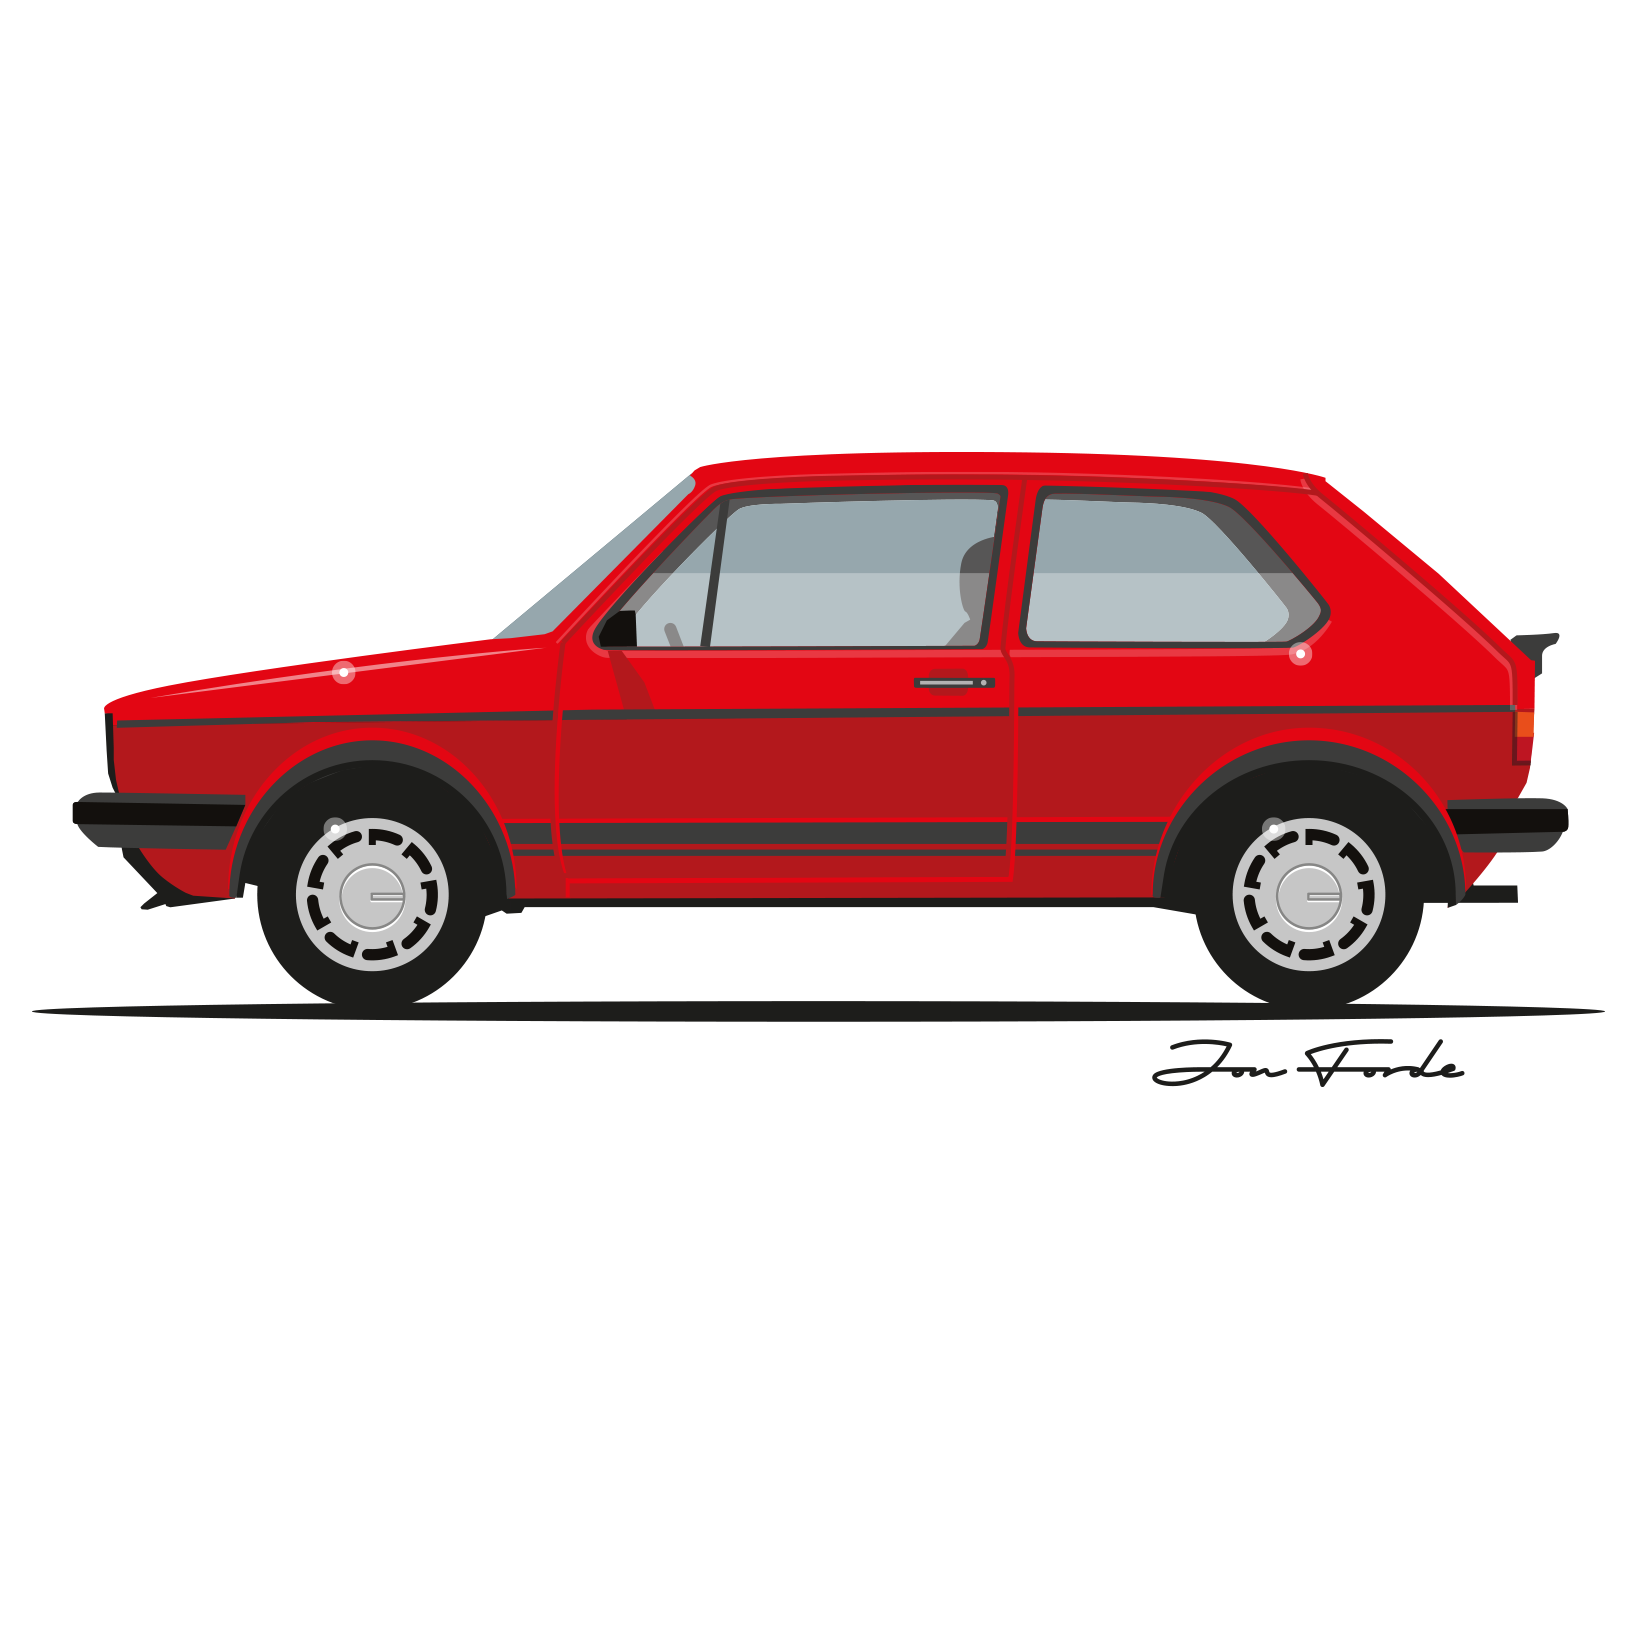 Clipart car accident image black and white Car side view PNG Clipart - Download free Car images in PNG - Part 6 image black and white